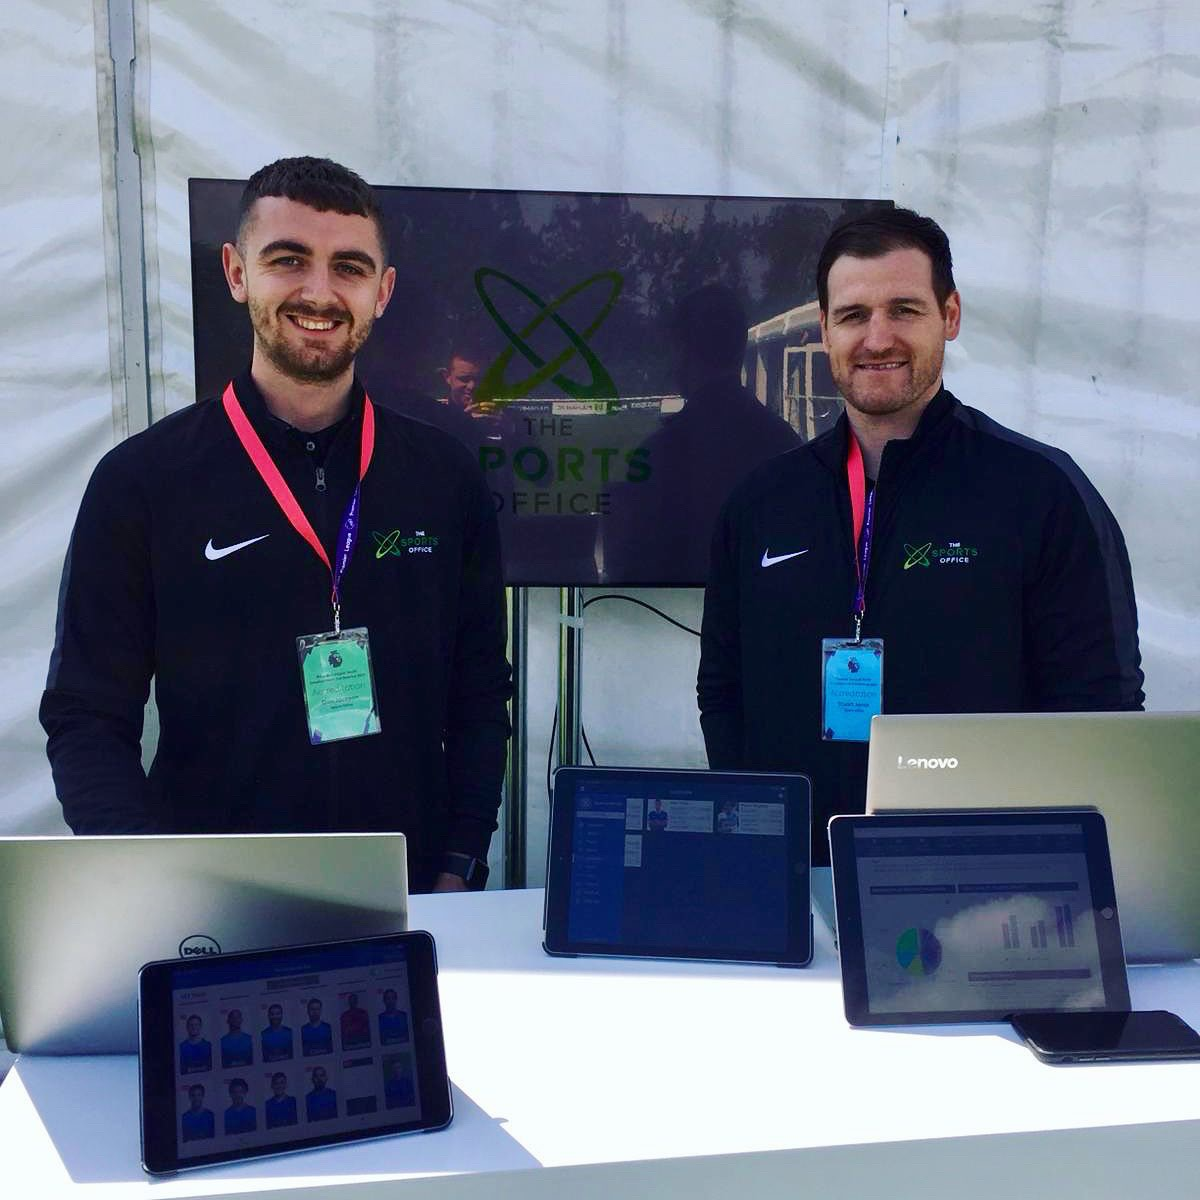 Client Manager's Dan & Stu at Premier League Youth Development Conference showing The Sports Office Systems & Apps